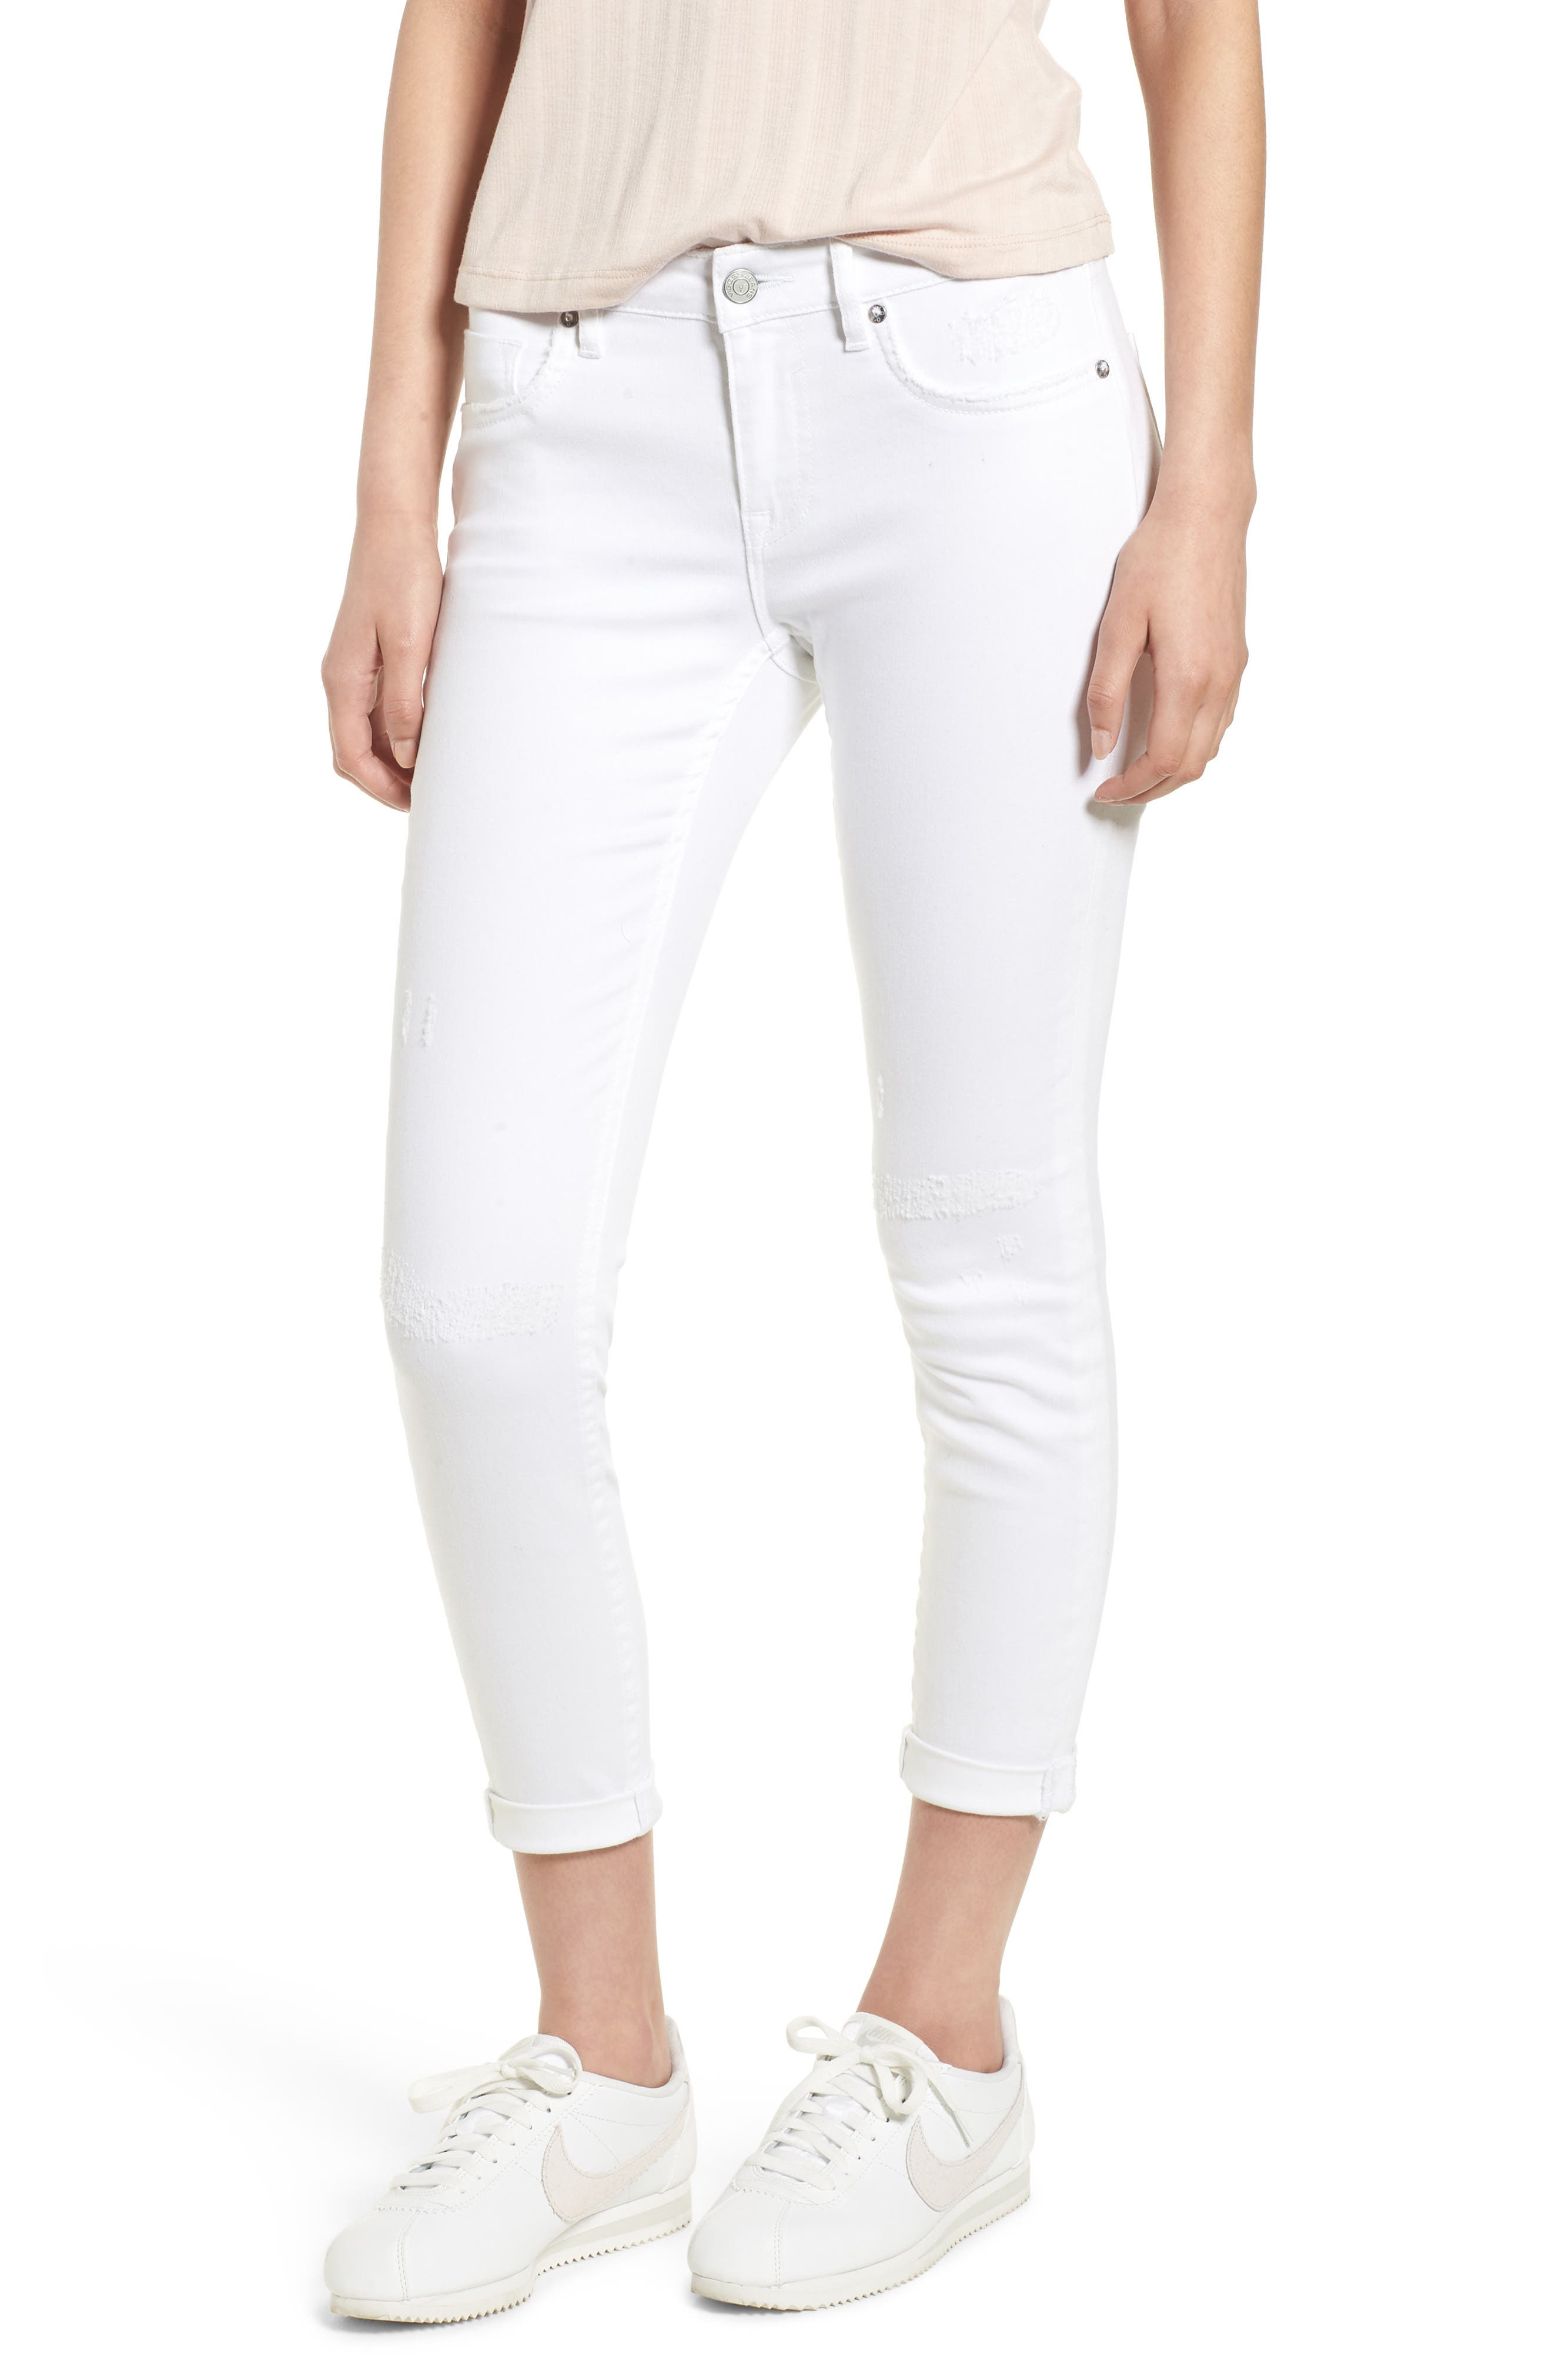 Thompson Tomboy Distressed Cuffed Crop Skinny Jeans,                             Main thumbnail 1, color,